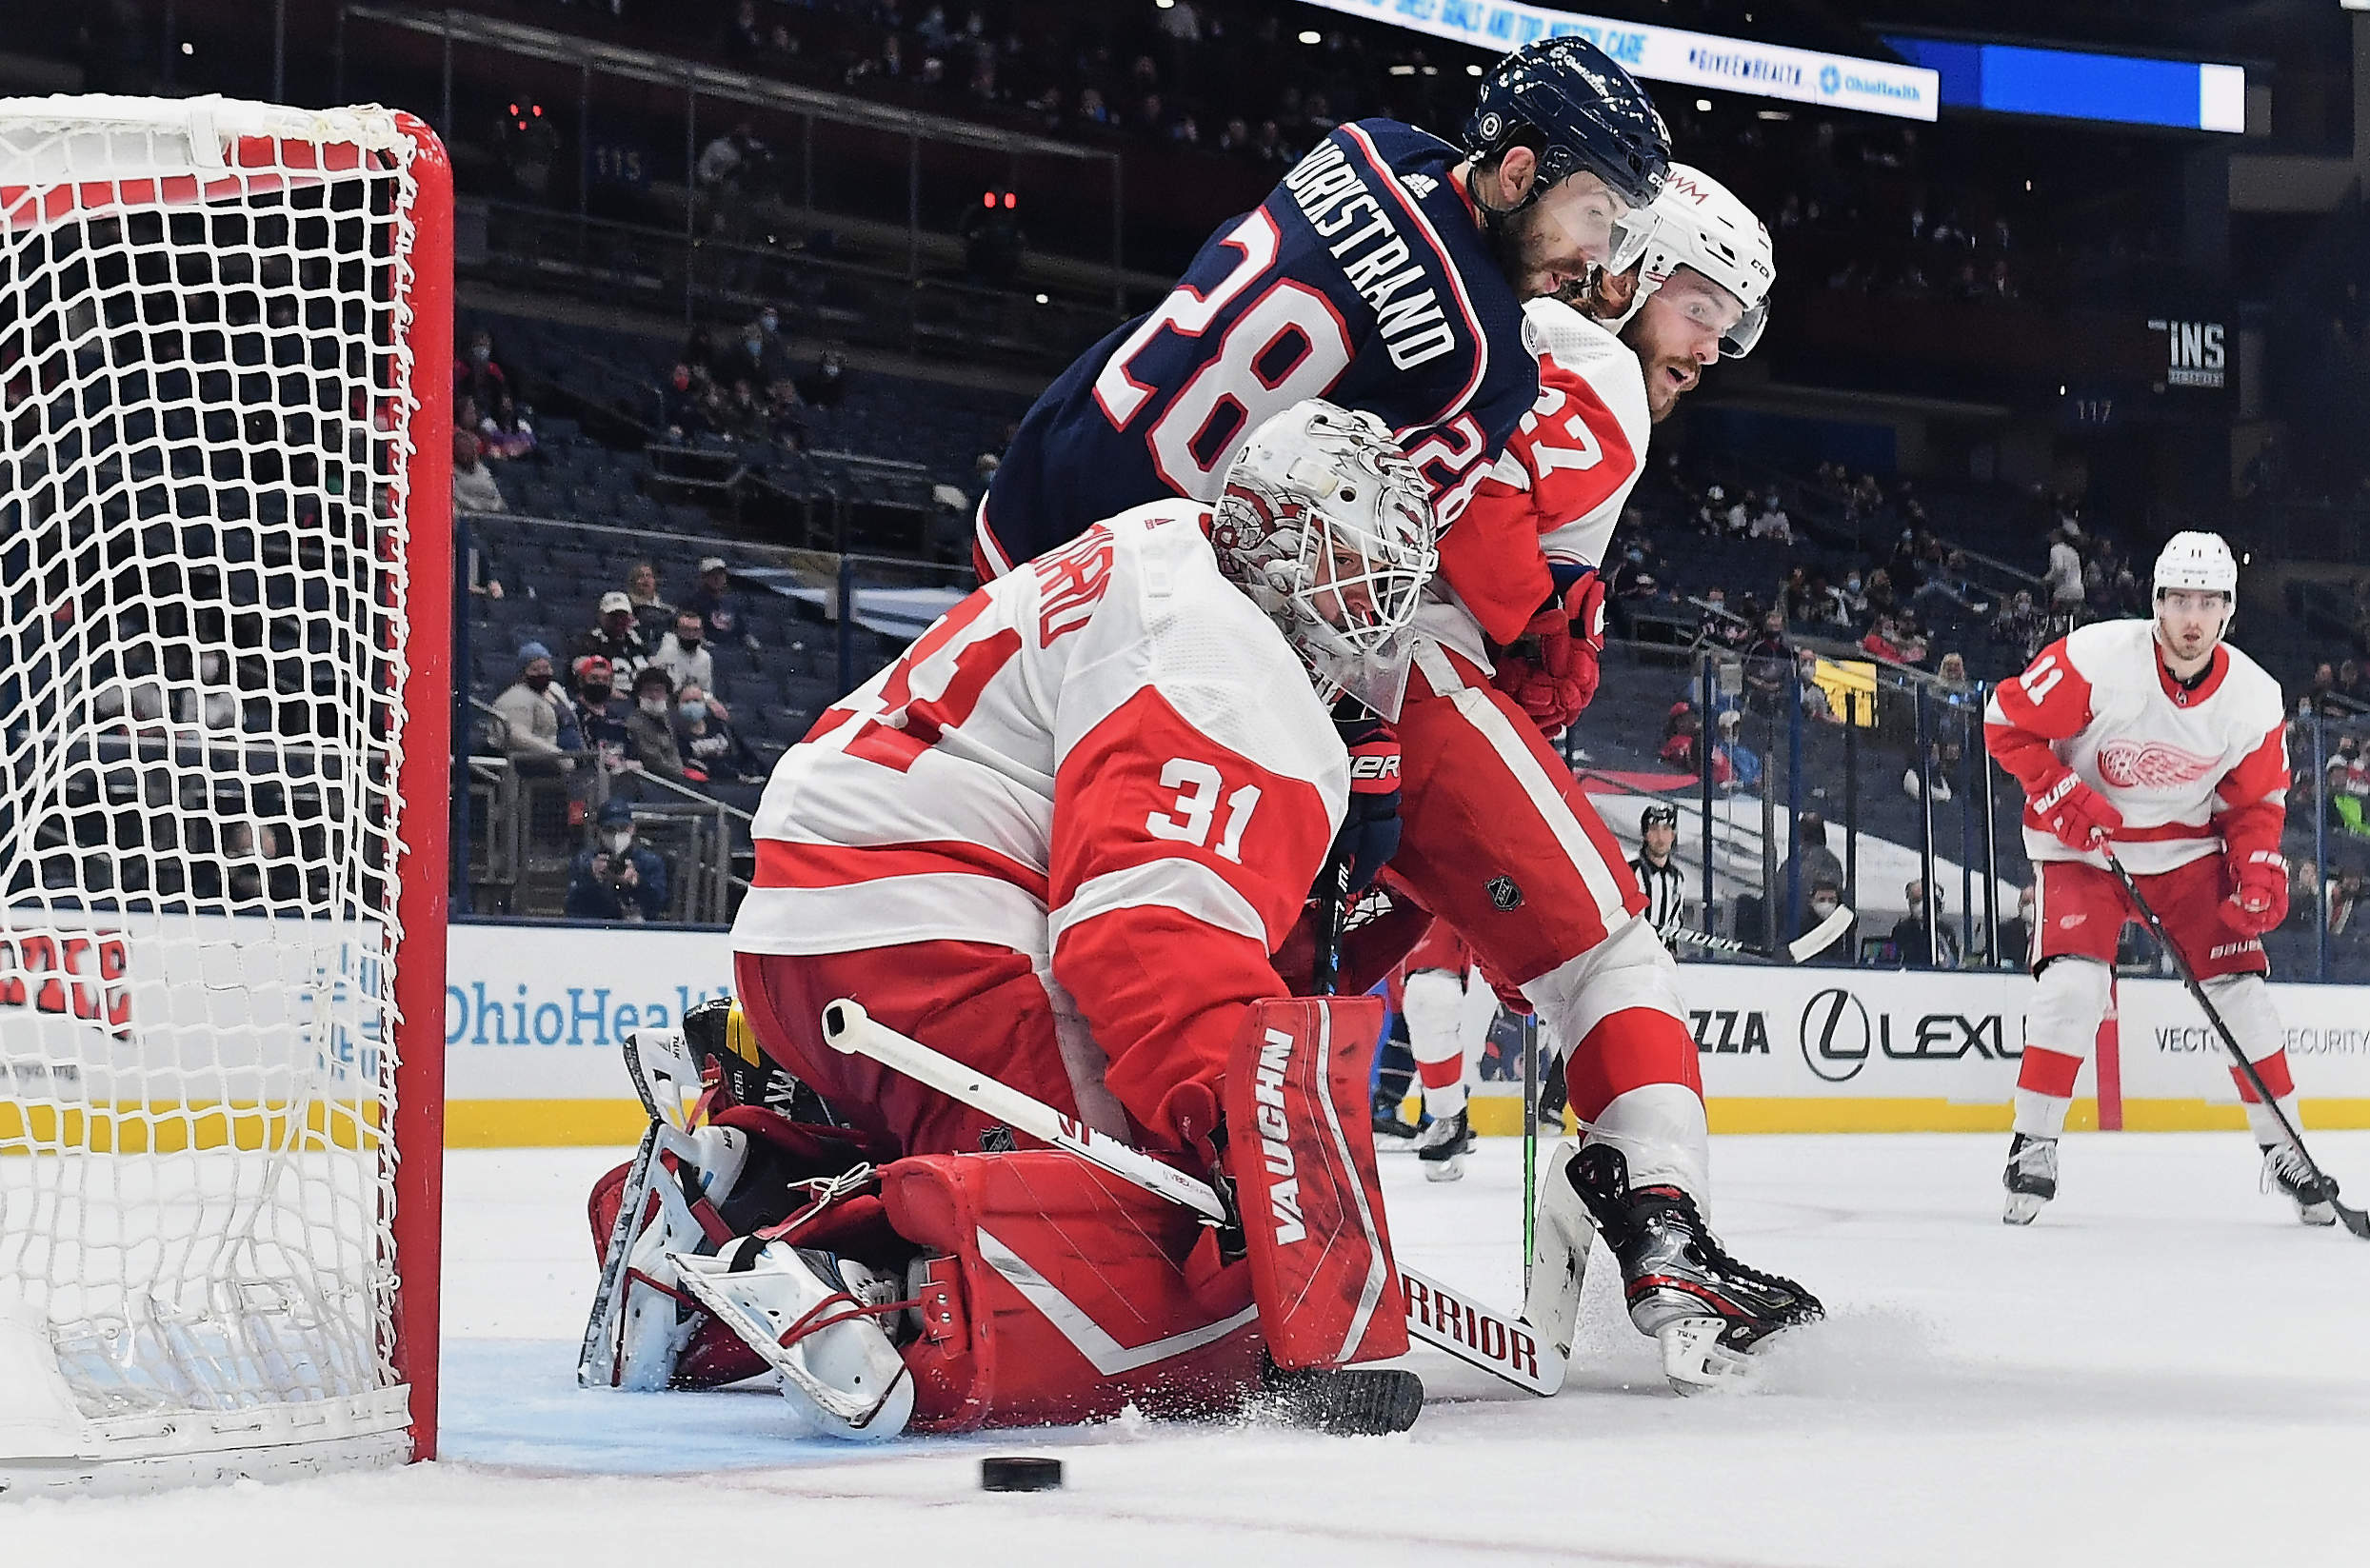 Goaltender Calvin Pickard #31 of the Detroit Red Wings defends the net against the Columbus Blue Jackets at Nationwide Arena on May 8, 2021 in Columbus, Ohio.